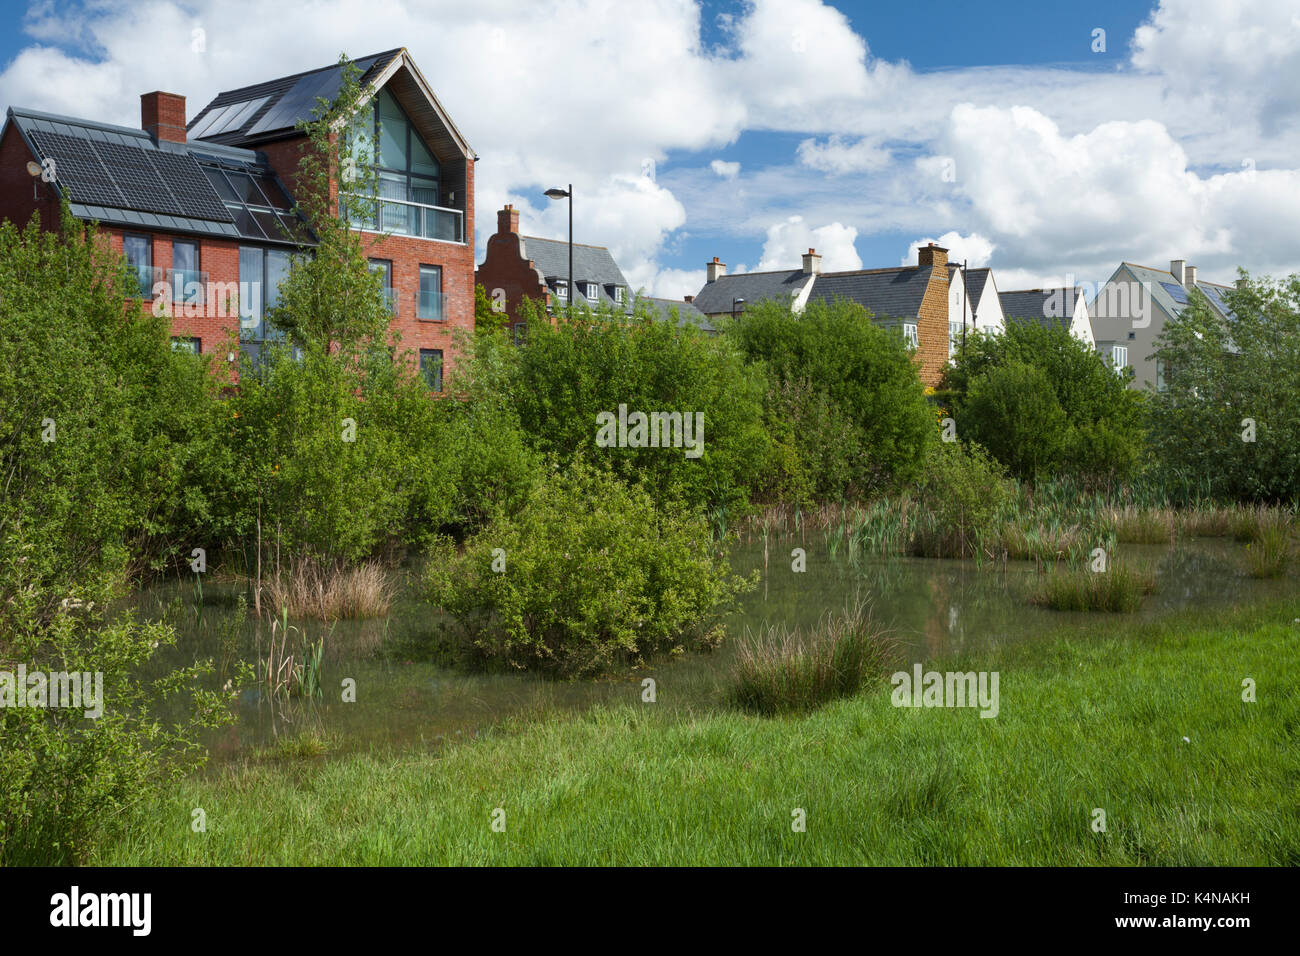 A mix of contemporary architectural styles beside parkland with ...